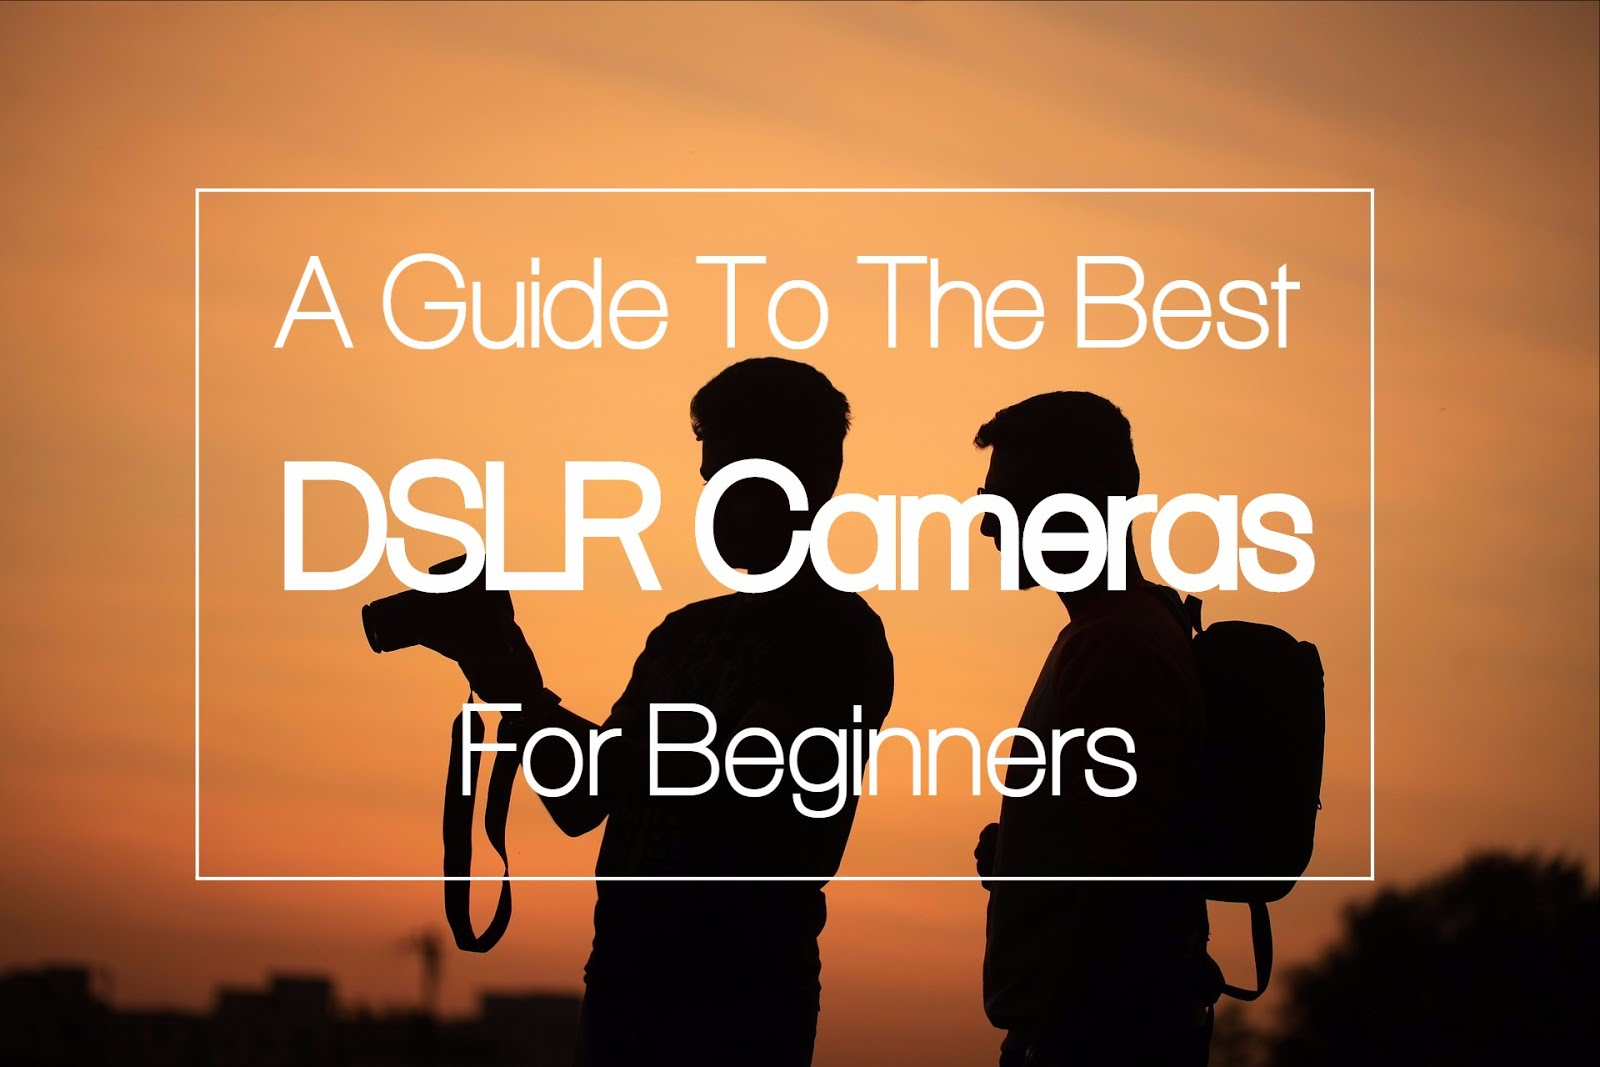 A Guide to the Best DSLR Cameras for Beginners